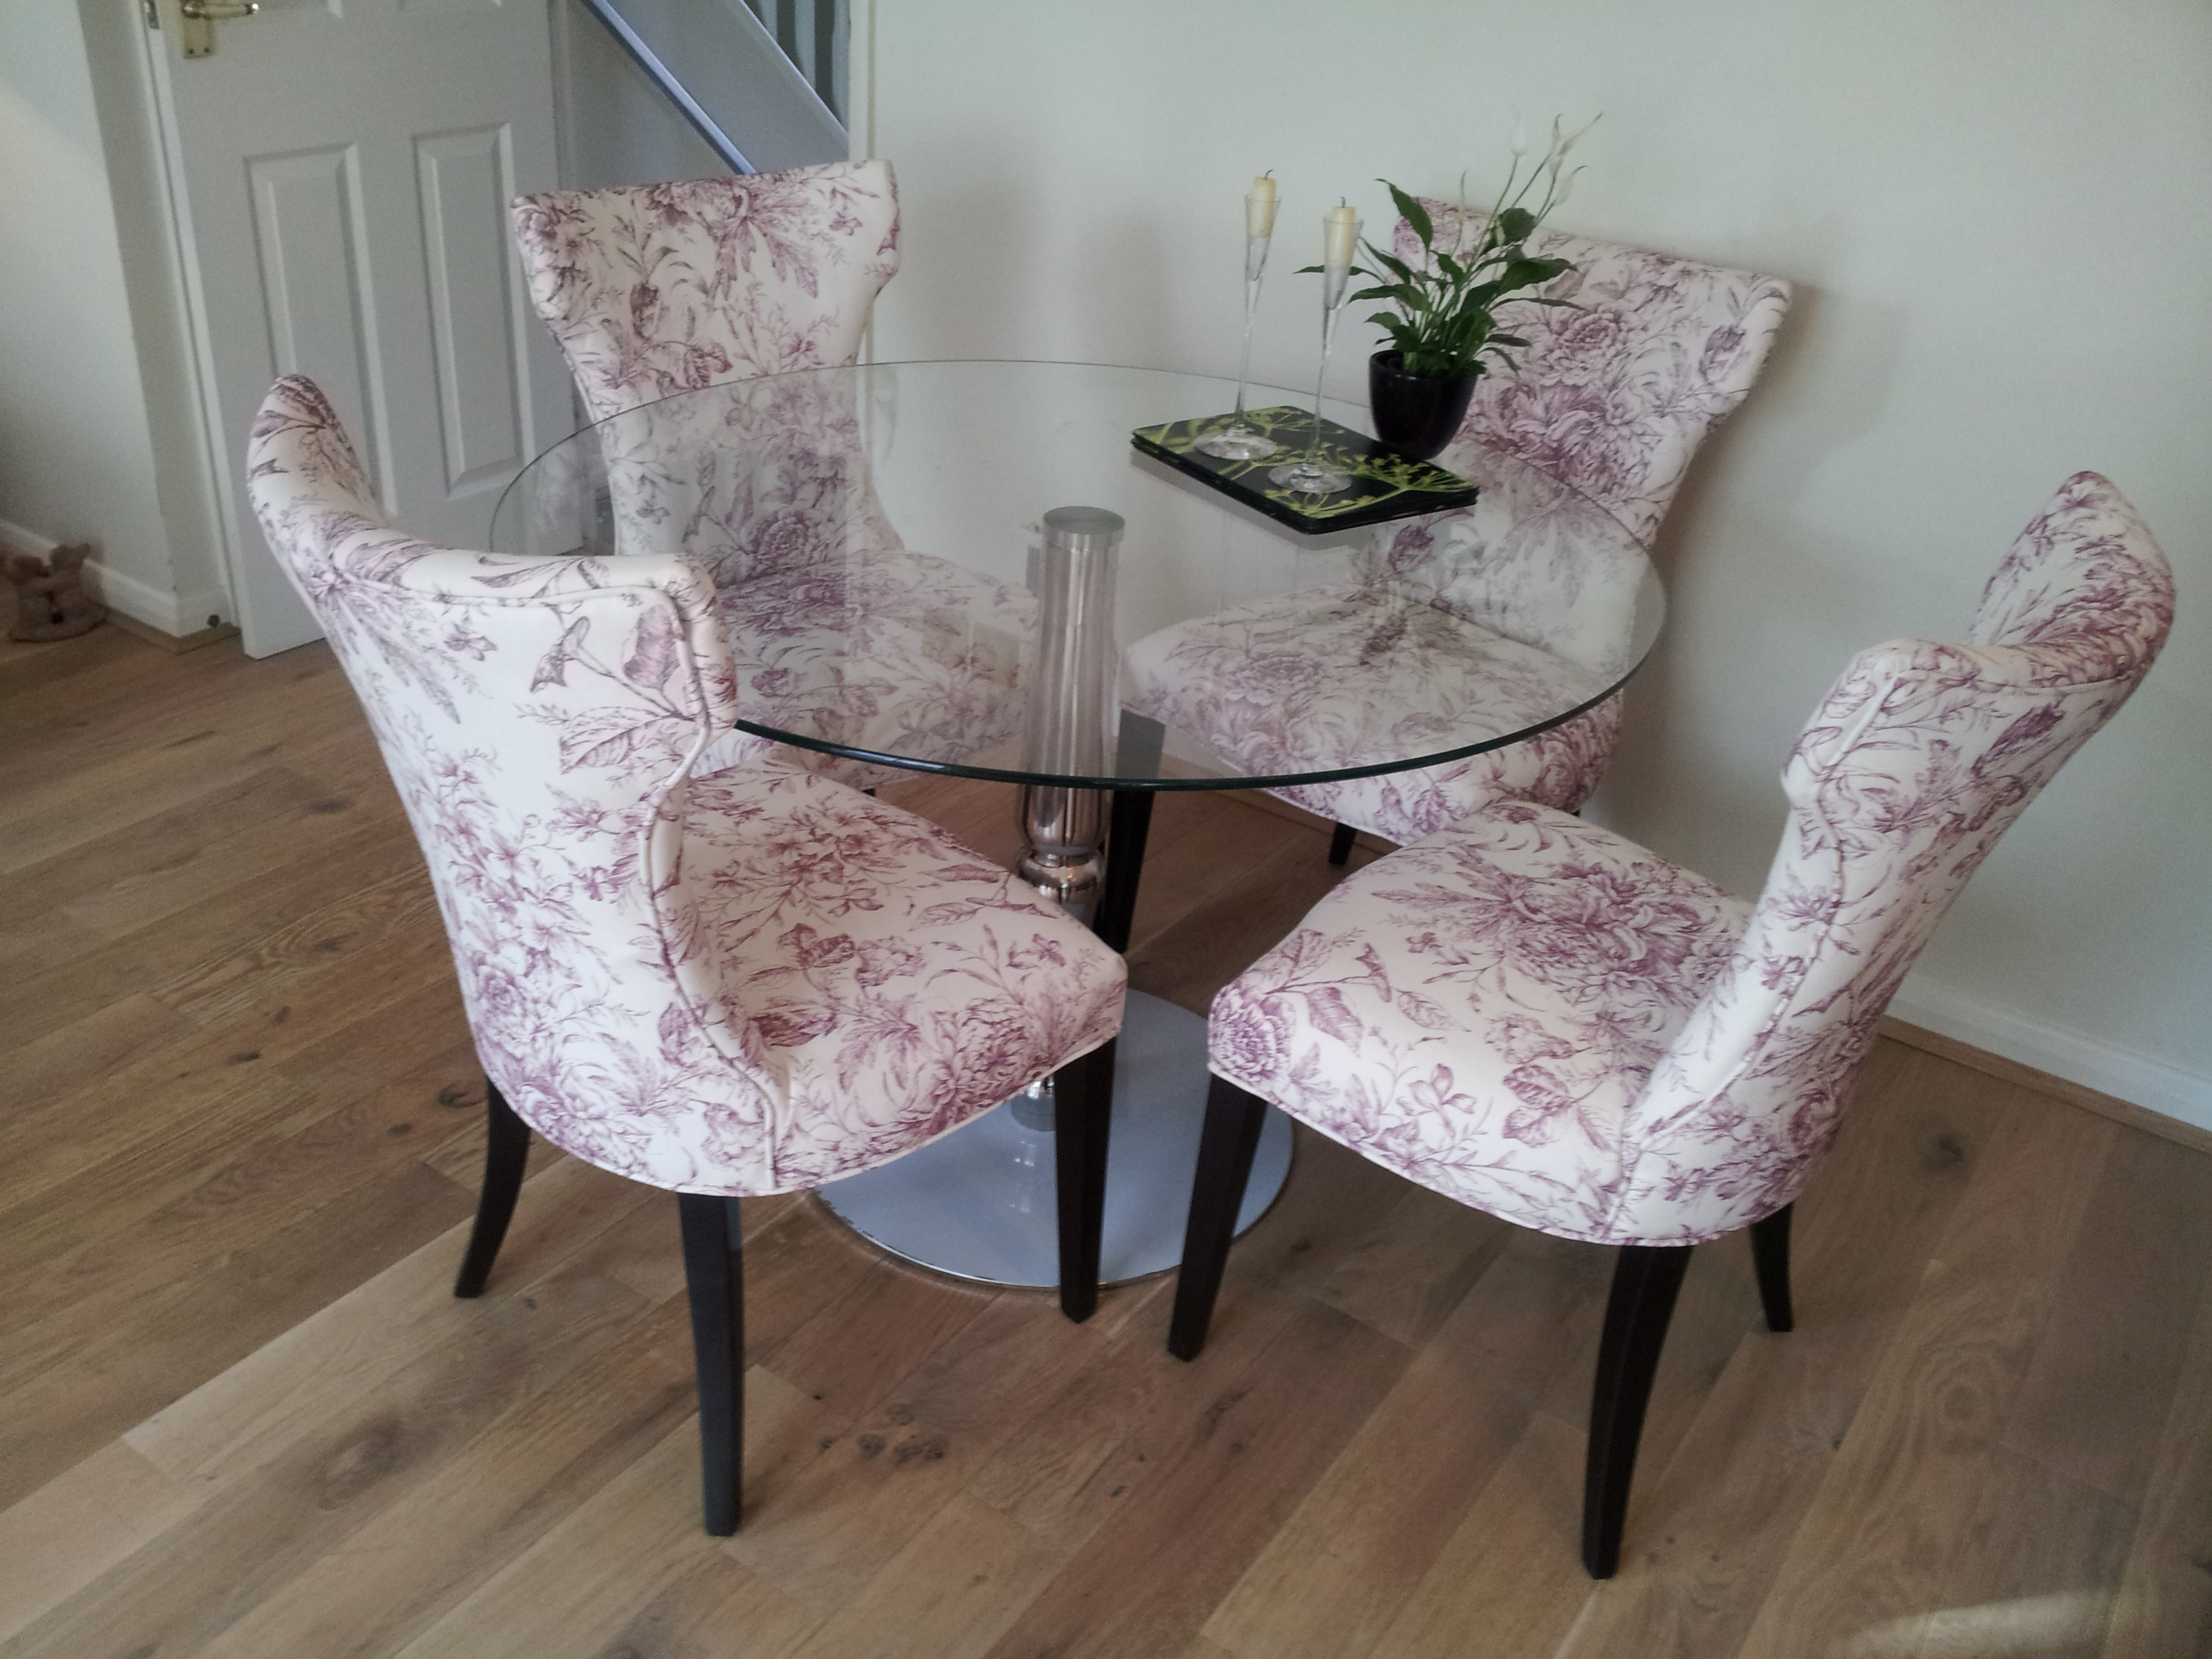 Newest Dining Tables And Purple Chairs Inside The Colour Purple – Smartspace Interiors (View 17 of 25)